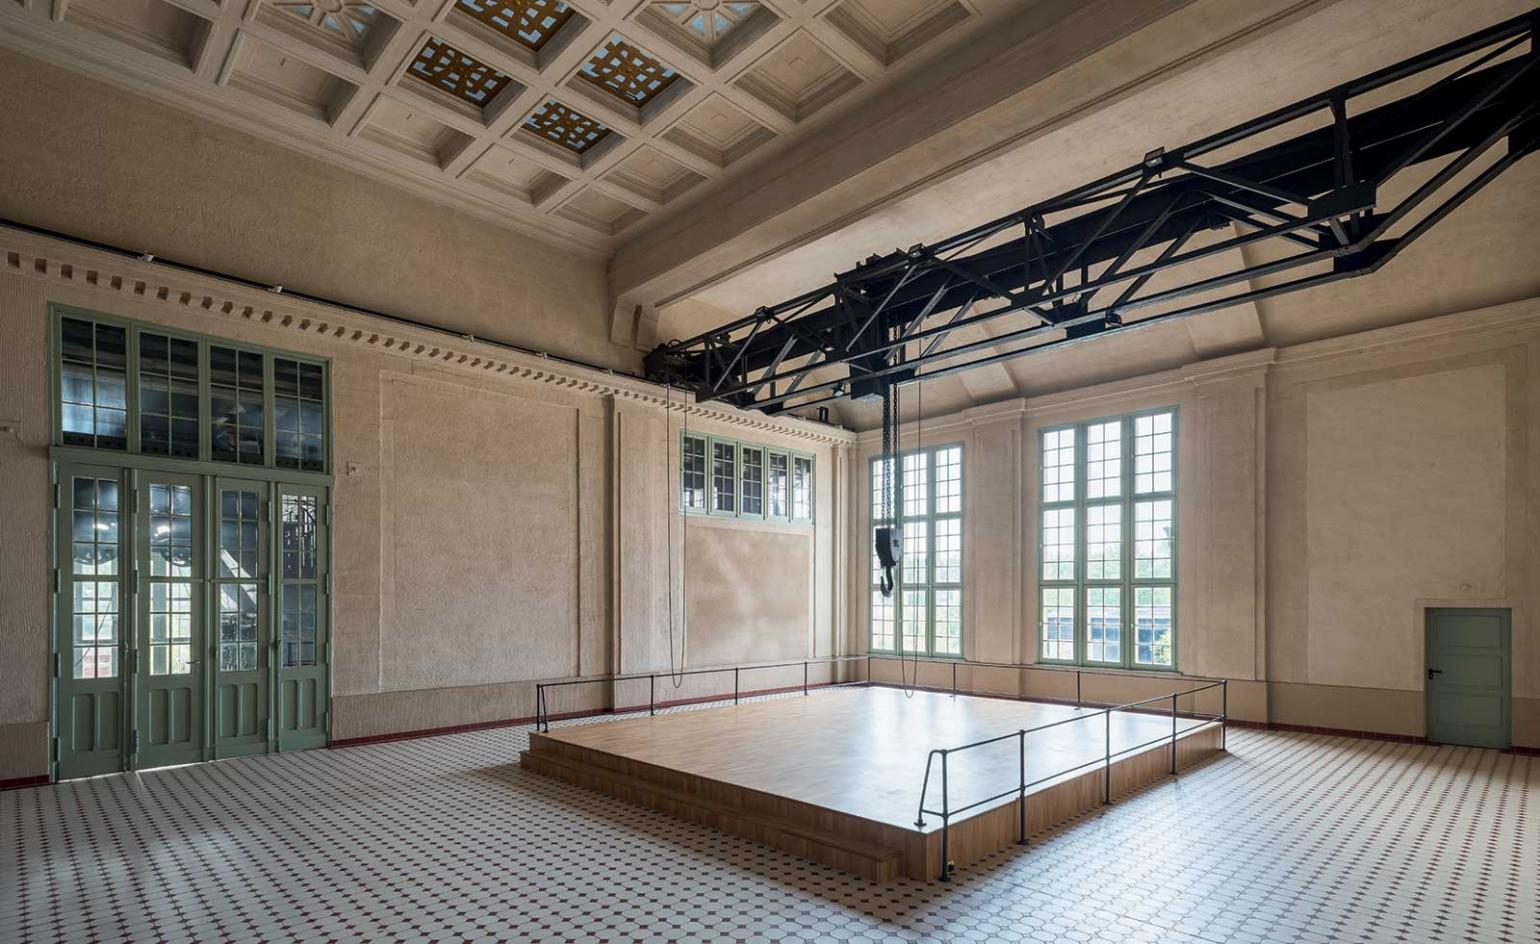 Inside E-Werk, a defunct Berlin power station turned off-the-grid contemporary art centre